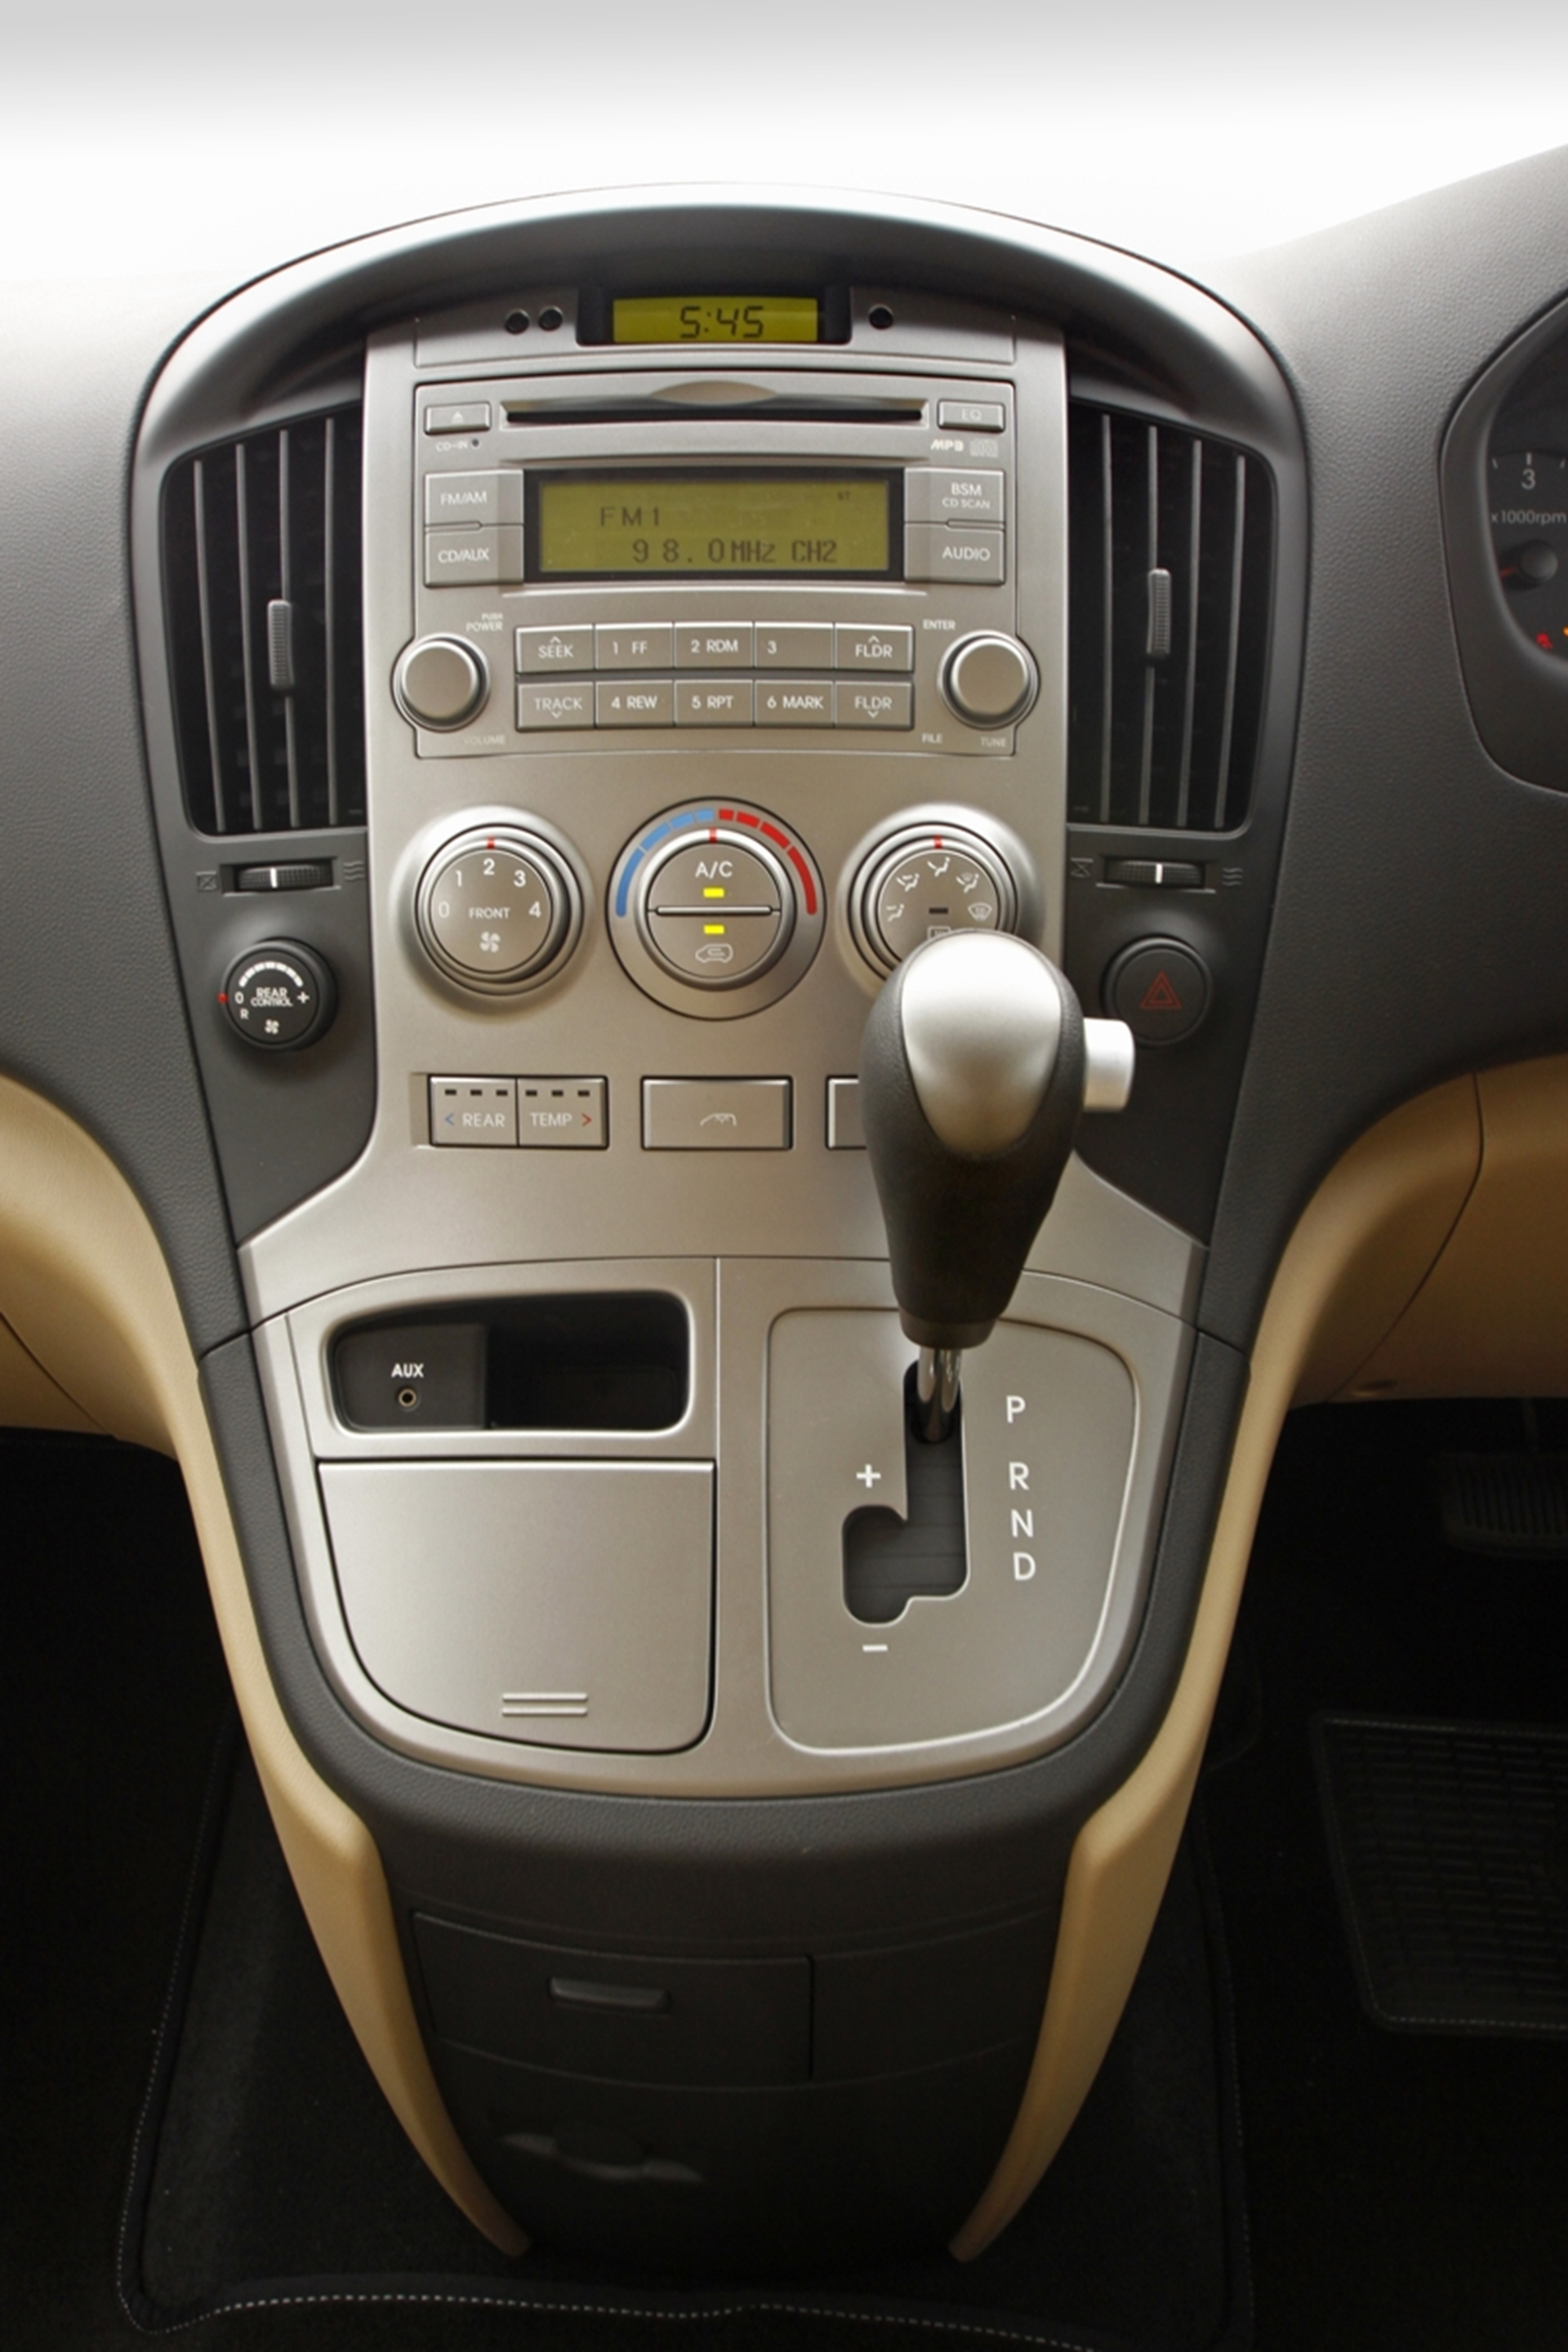 Hyundai H1 Instruments Panel